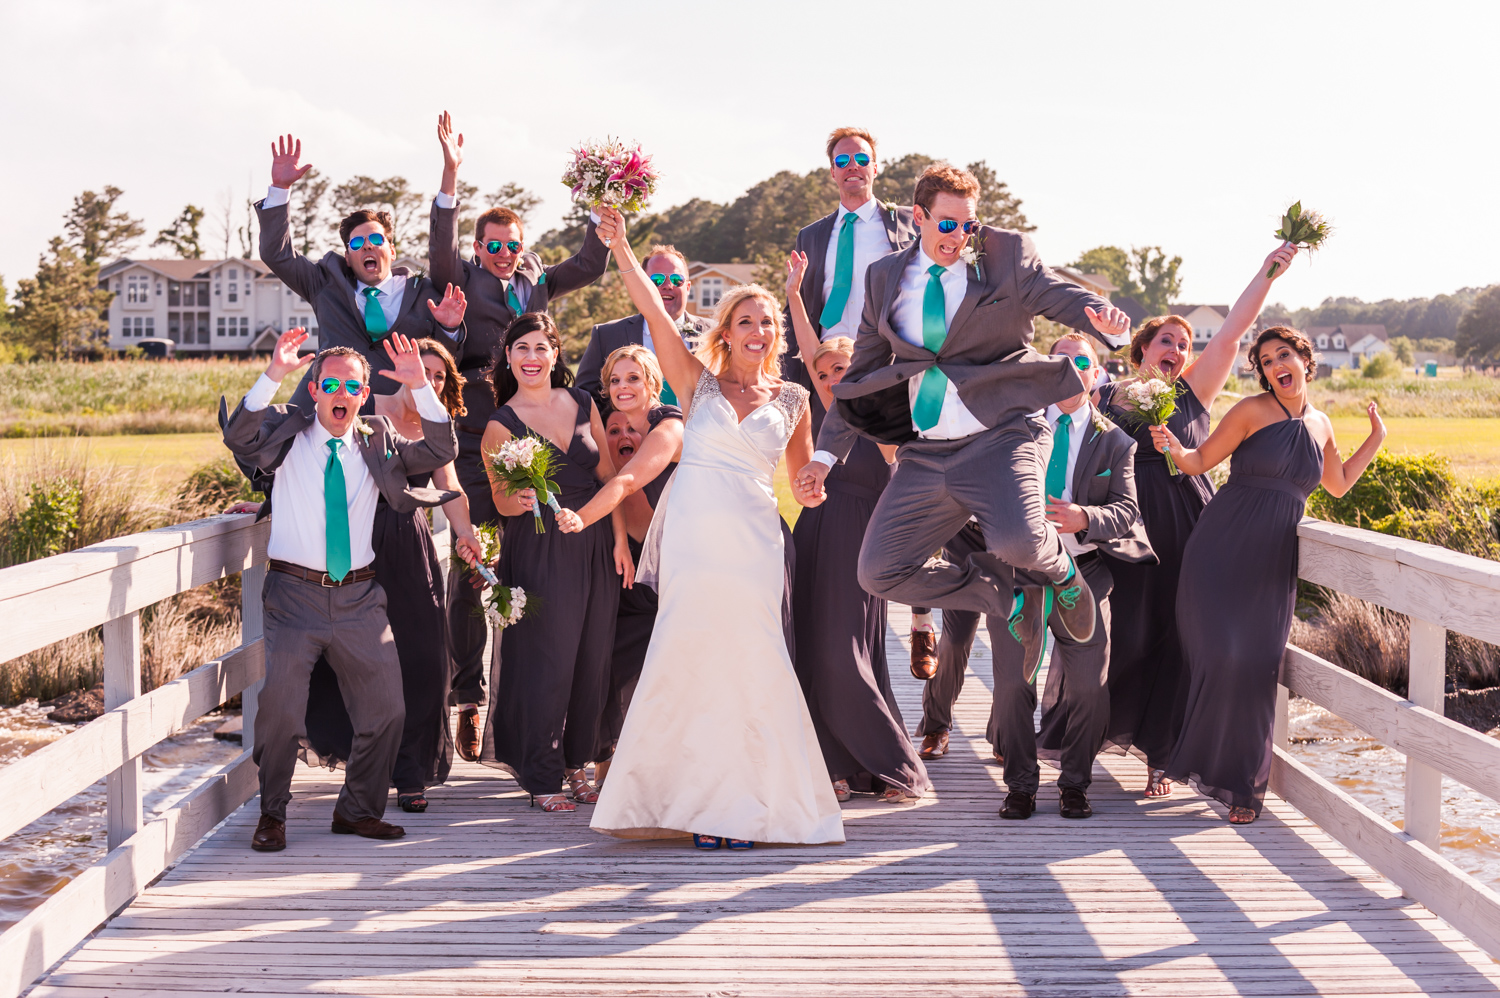 BridalPulse - An Outdoor Vineyard Wedding in NC By Rent My Wedding | bridal party jumping